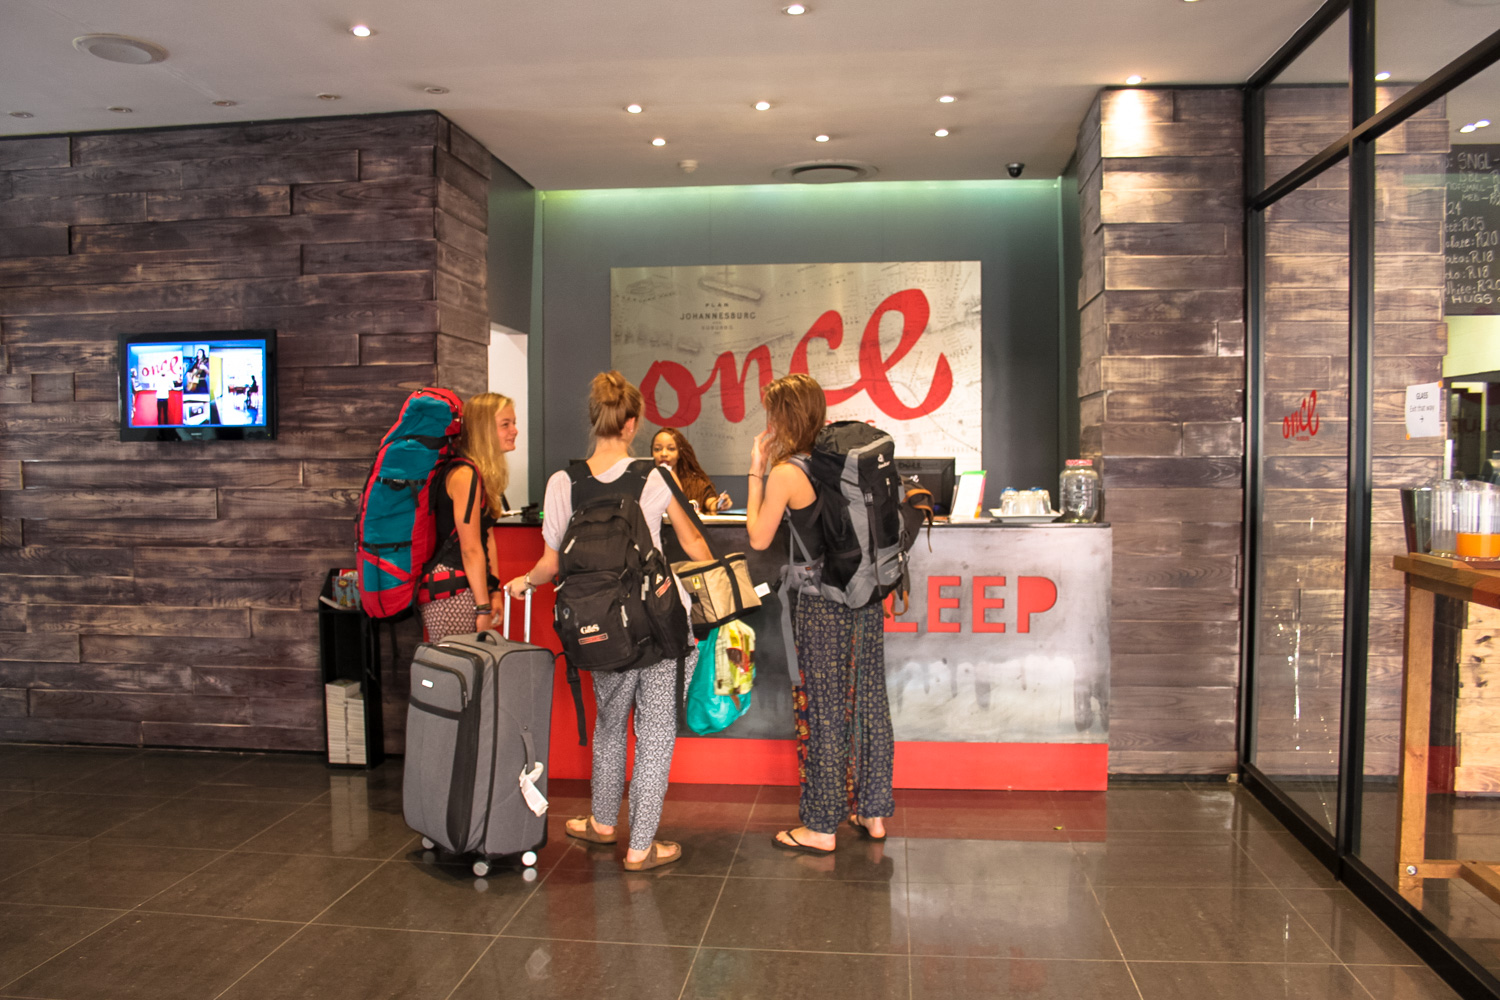 Review: Once in Joburg - Check in and Reception